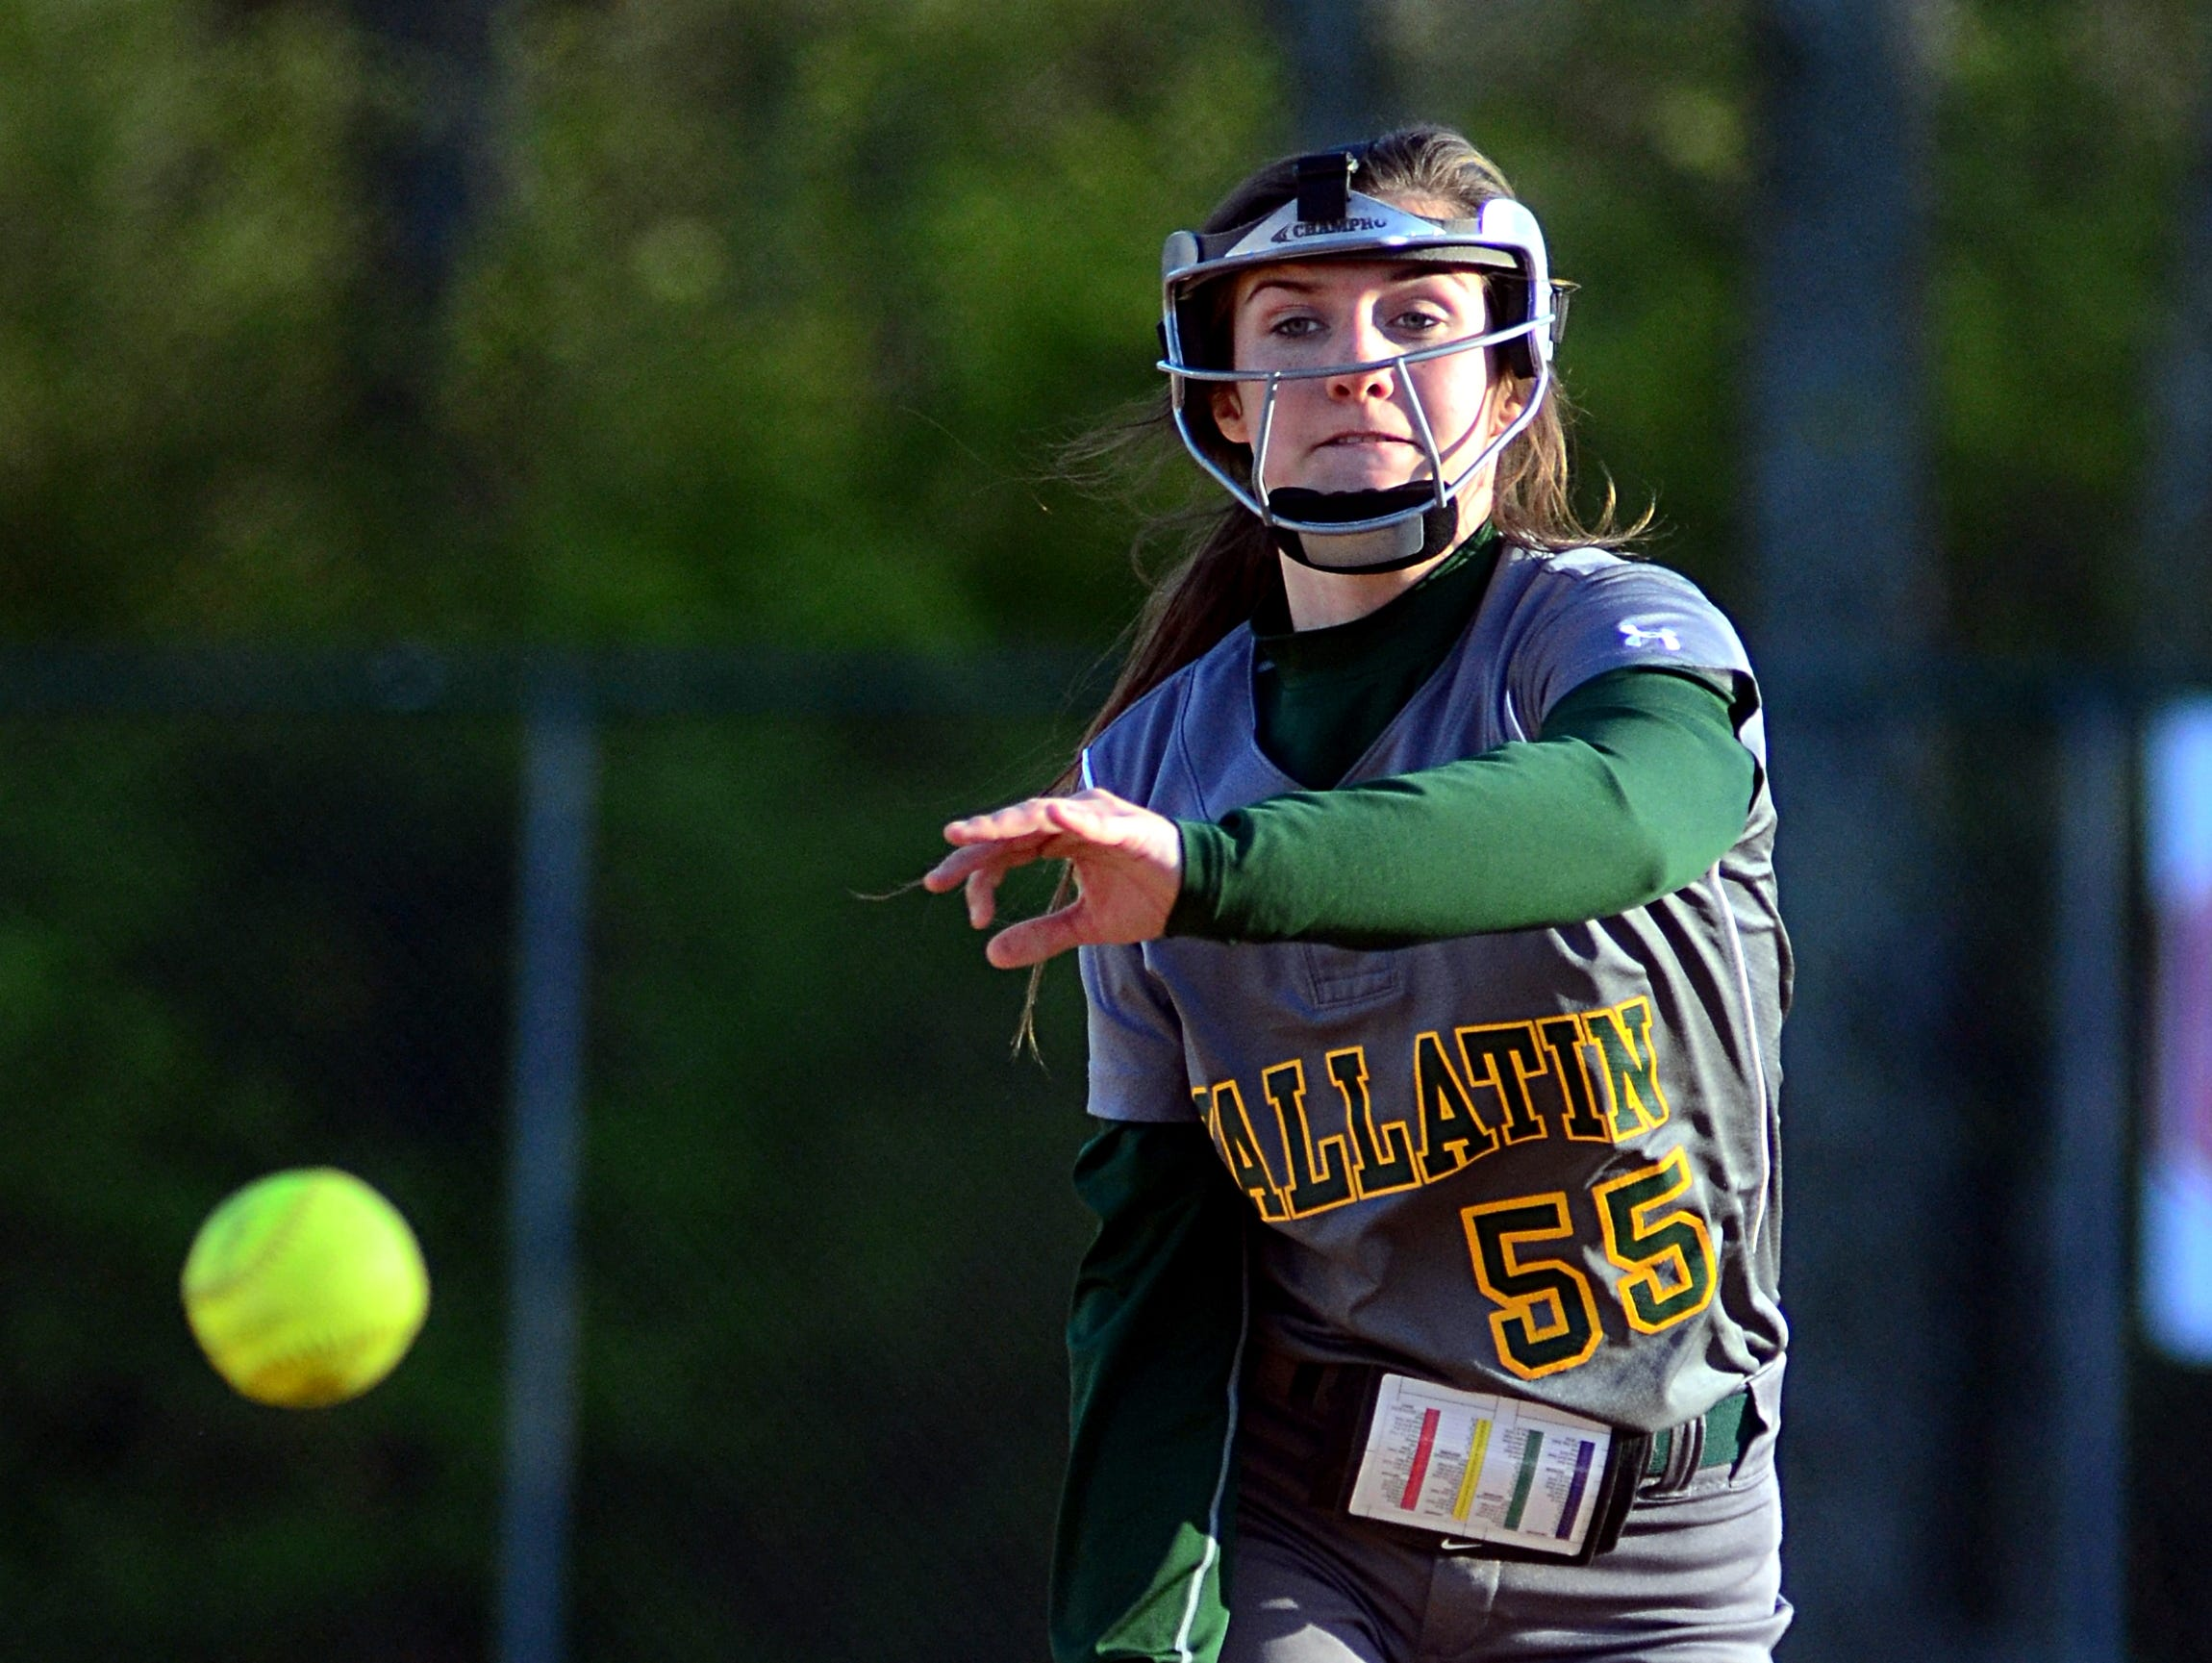 Gallatin High junior Savannah Link delivers a pitch during third-inning action. At the plate, Link had one hit and scored a run in the Lady Wave's 12-4 loss to Station Camp.